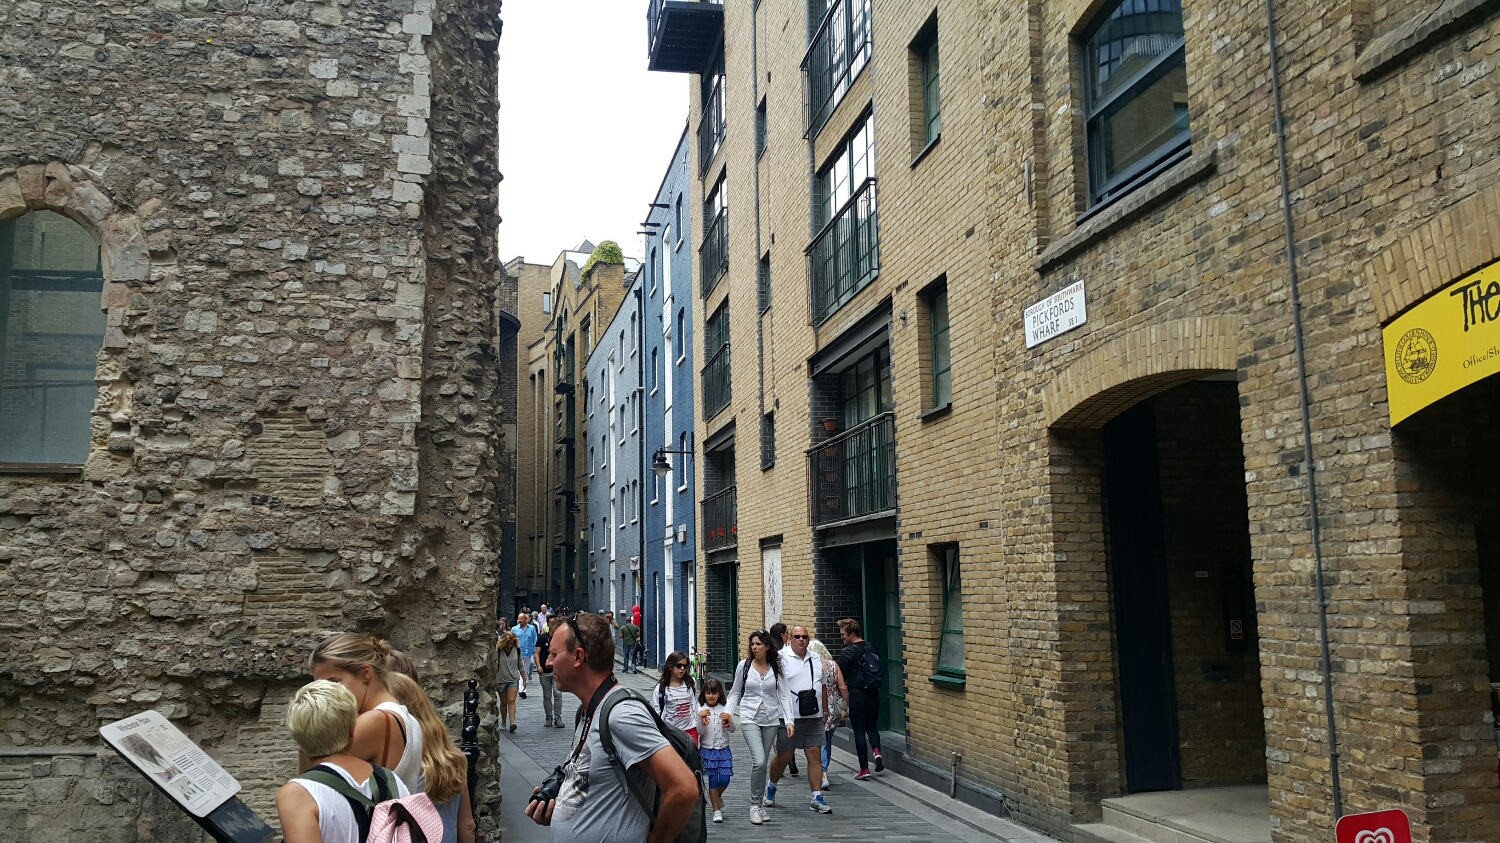 Some very old 16th century buildings on the left and some modern old buildings on the right.  It all looks bloody old!